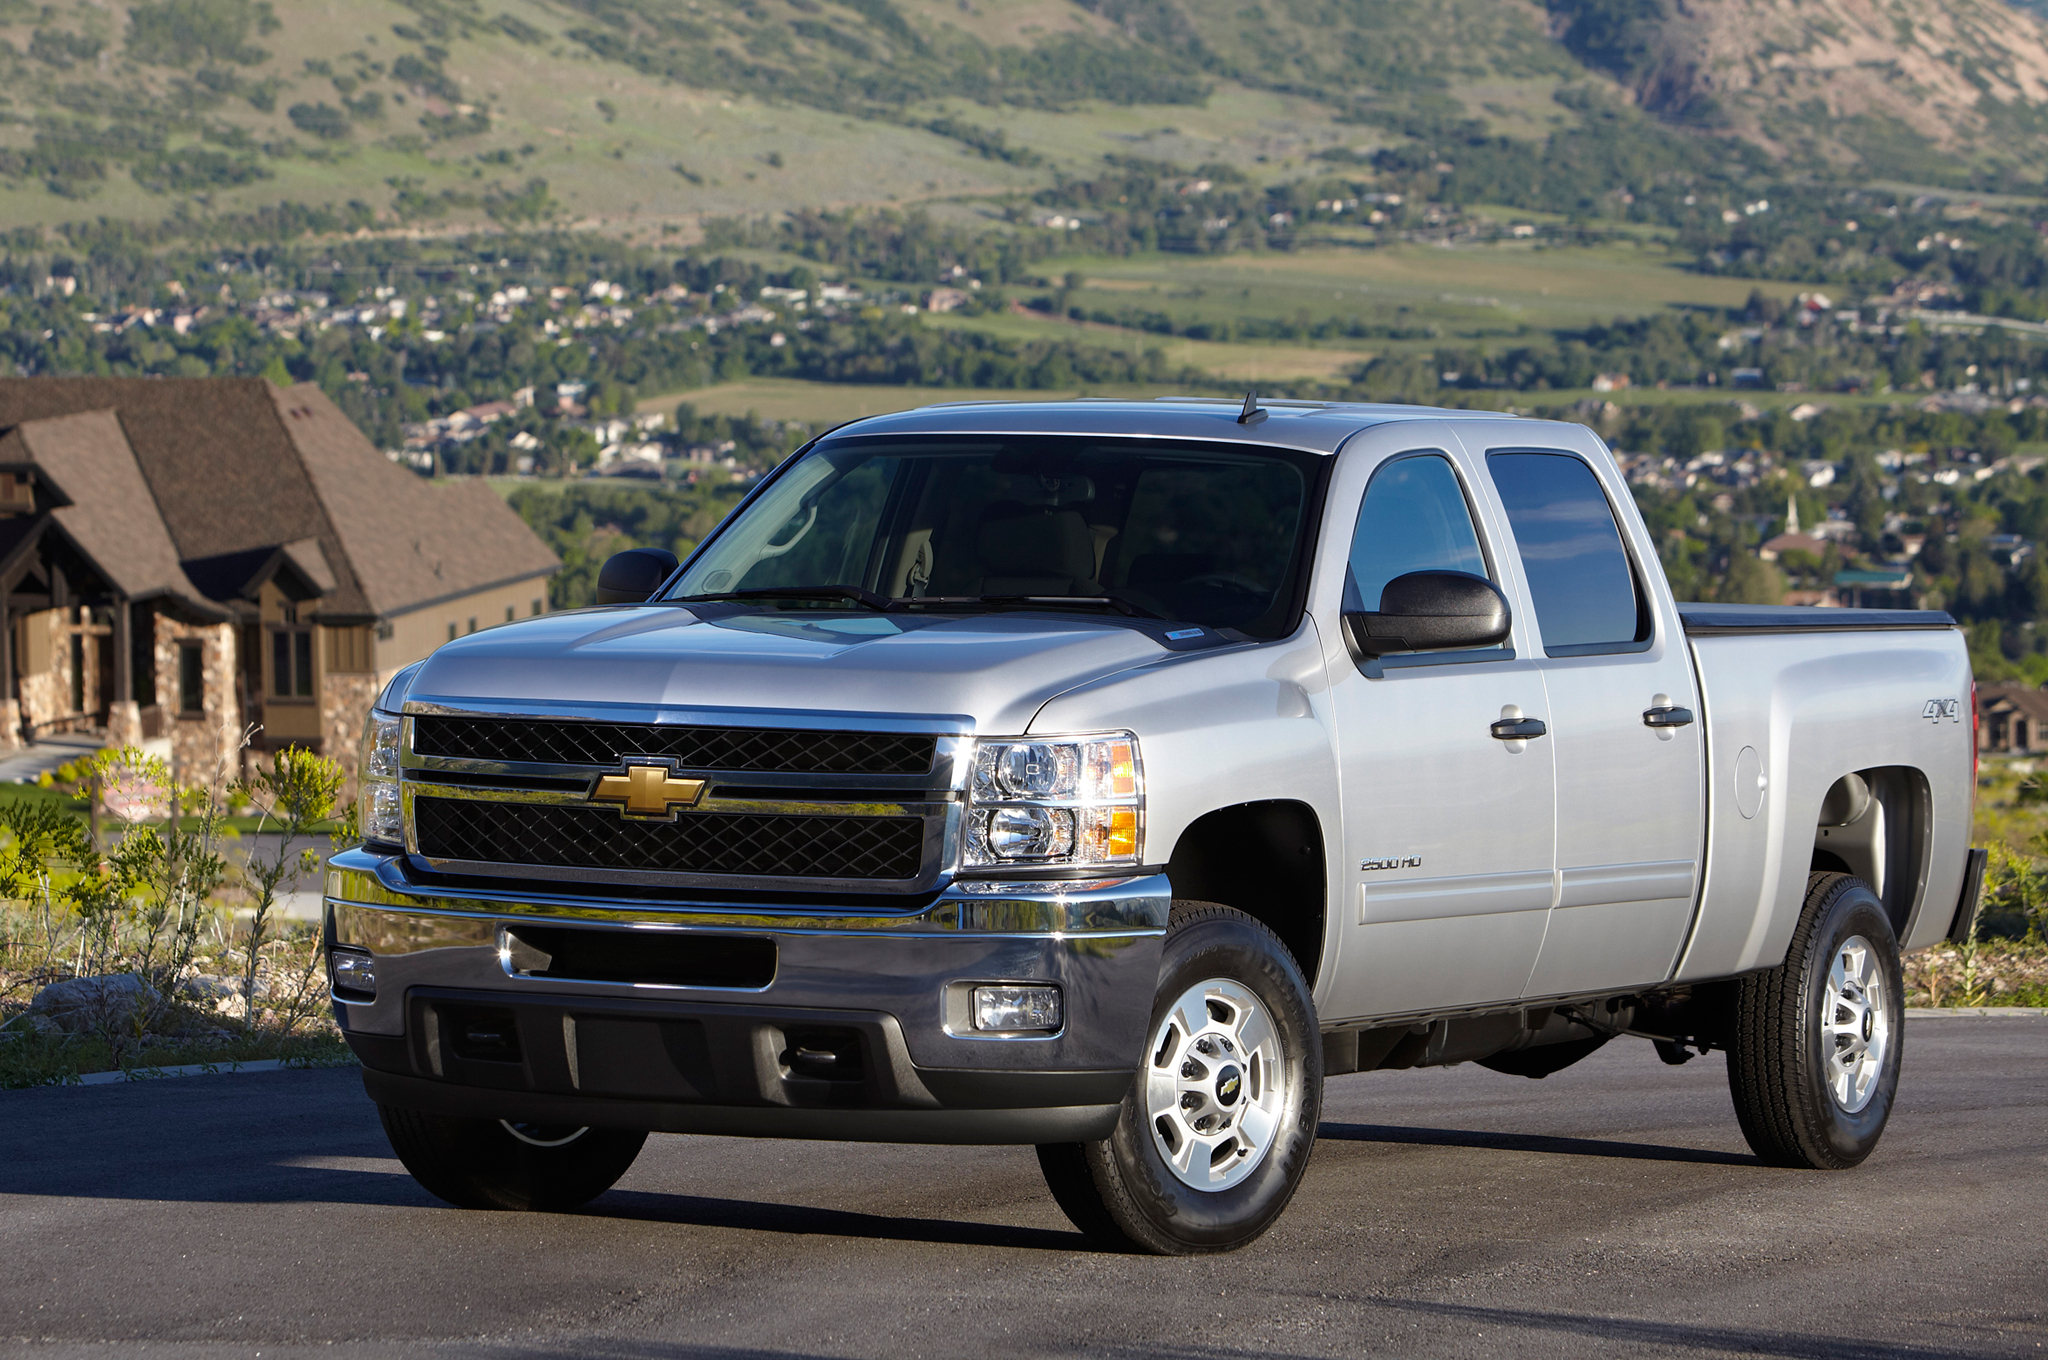 2631e9c667a019 2014-2015 Trucks, SUVs and Vans: The Ultimate Buyer's Guide - MotorTrend